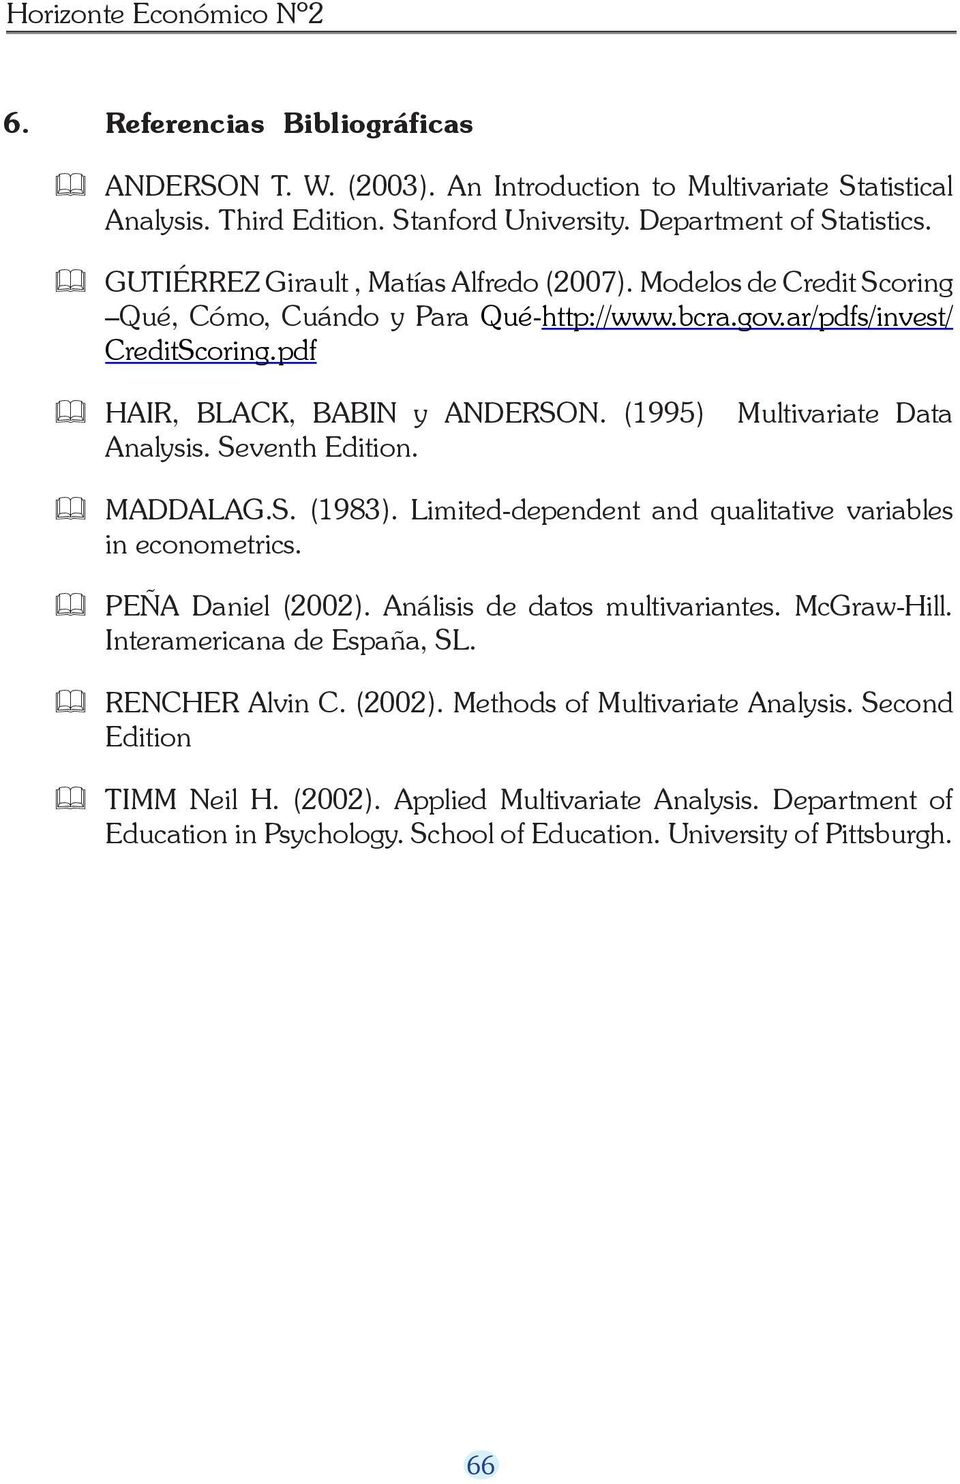 (5) Multivariate Data Analysis. Seventh Edition. MADDALAG.S. (983). Limited-dependent and qualitative variables in econometrics. PEÑA Daniel (2002). Análisis de datos multivariantes. McGraw-Hill.